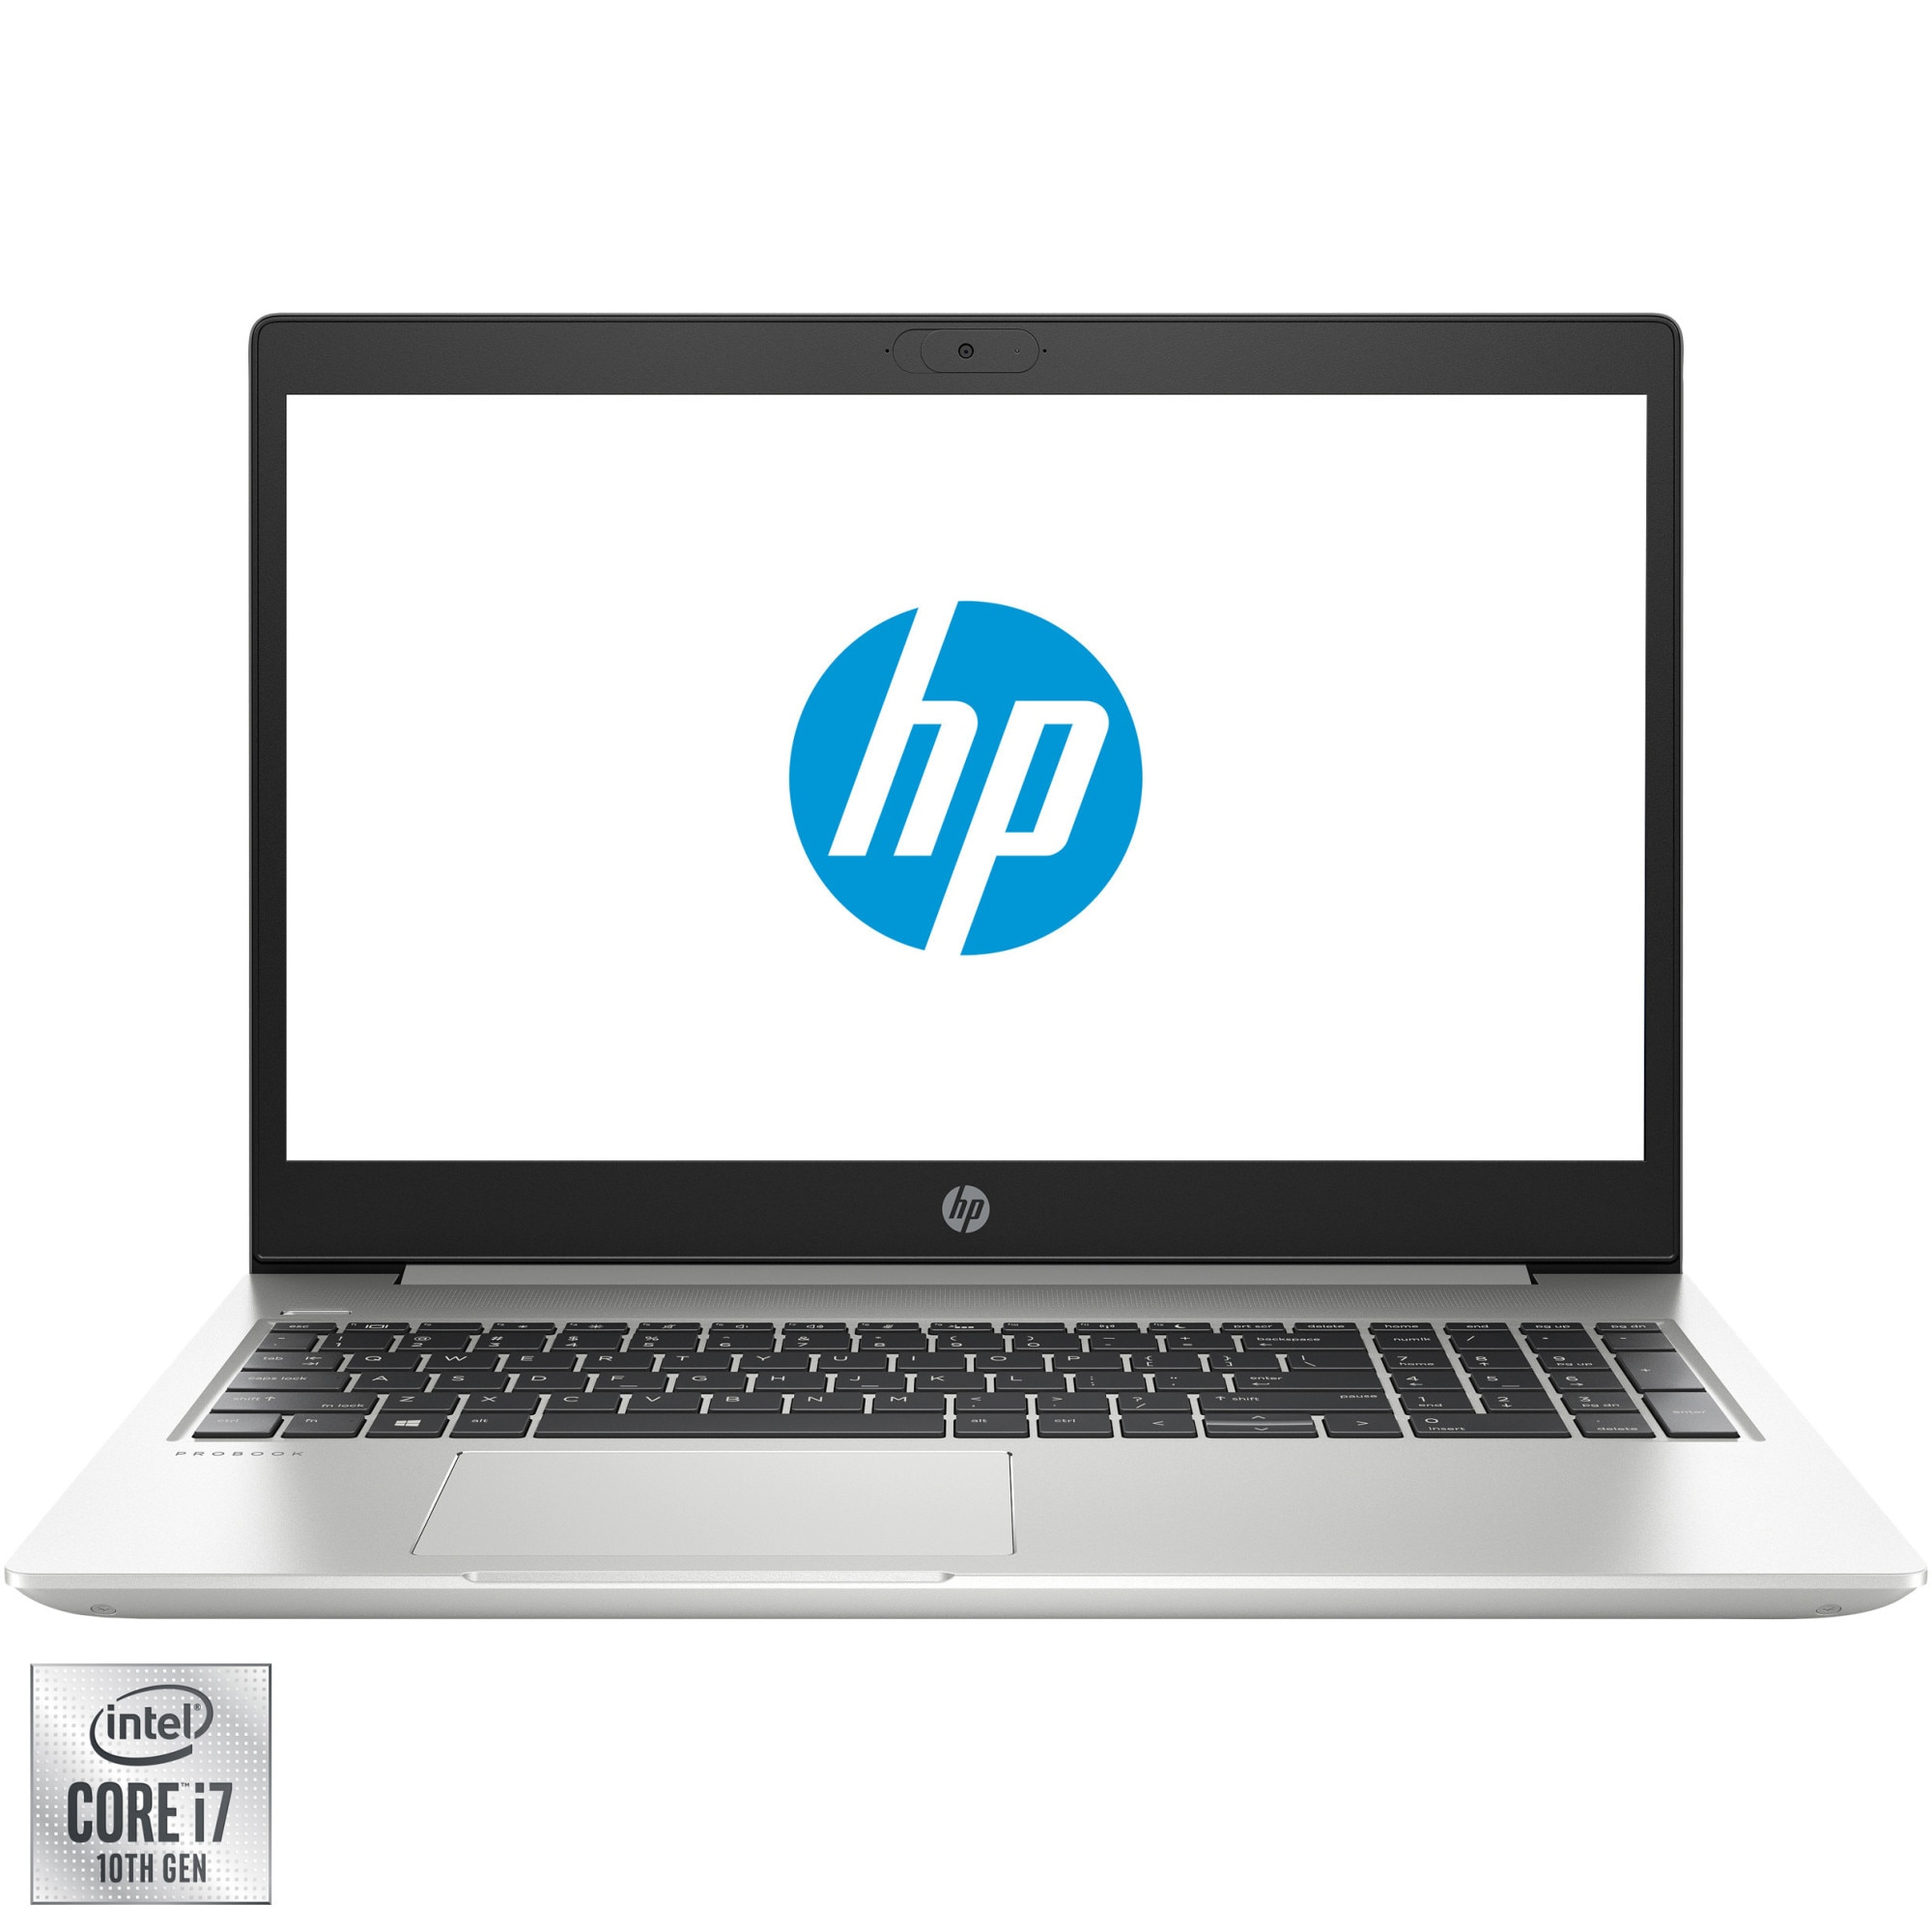 "Fotografie Laptop HP ProBook 450 G7 cu procesor Intel® Core™ i7-10510U pana la 4.90 GHz, 15.6"", Full HD, 8GB, 1TB HDD + 256GB SSD, Intel® UHD Graphics 620, Free Dos, Silver"